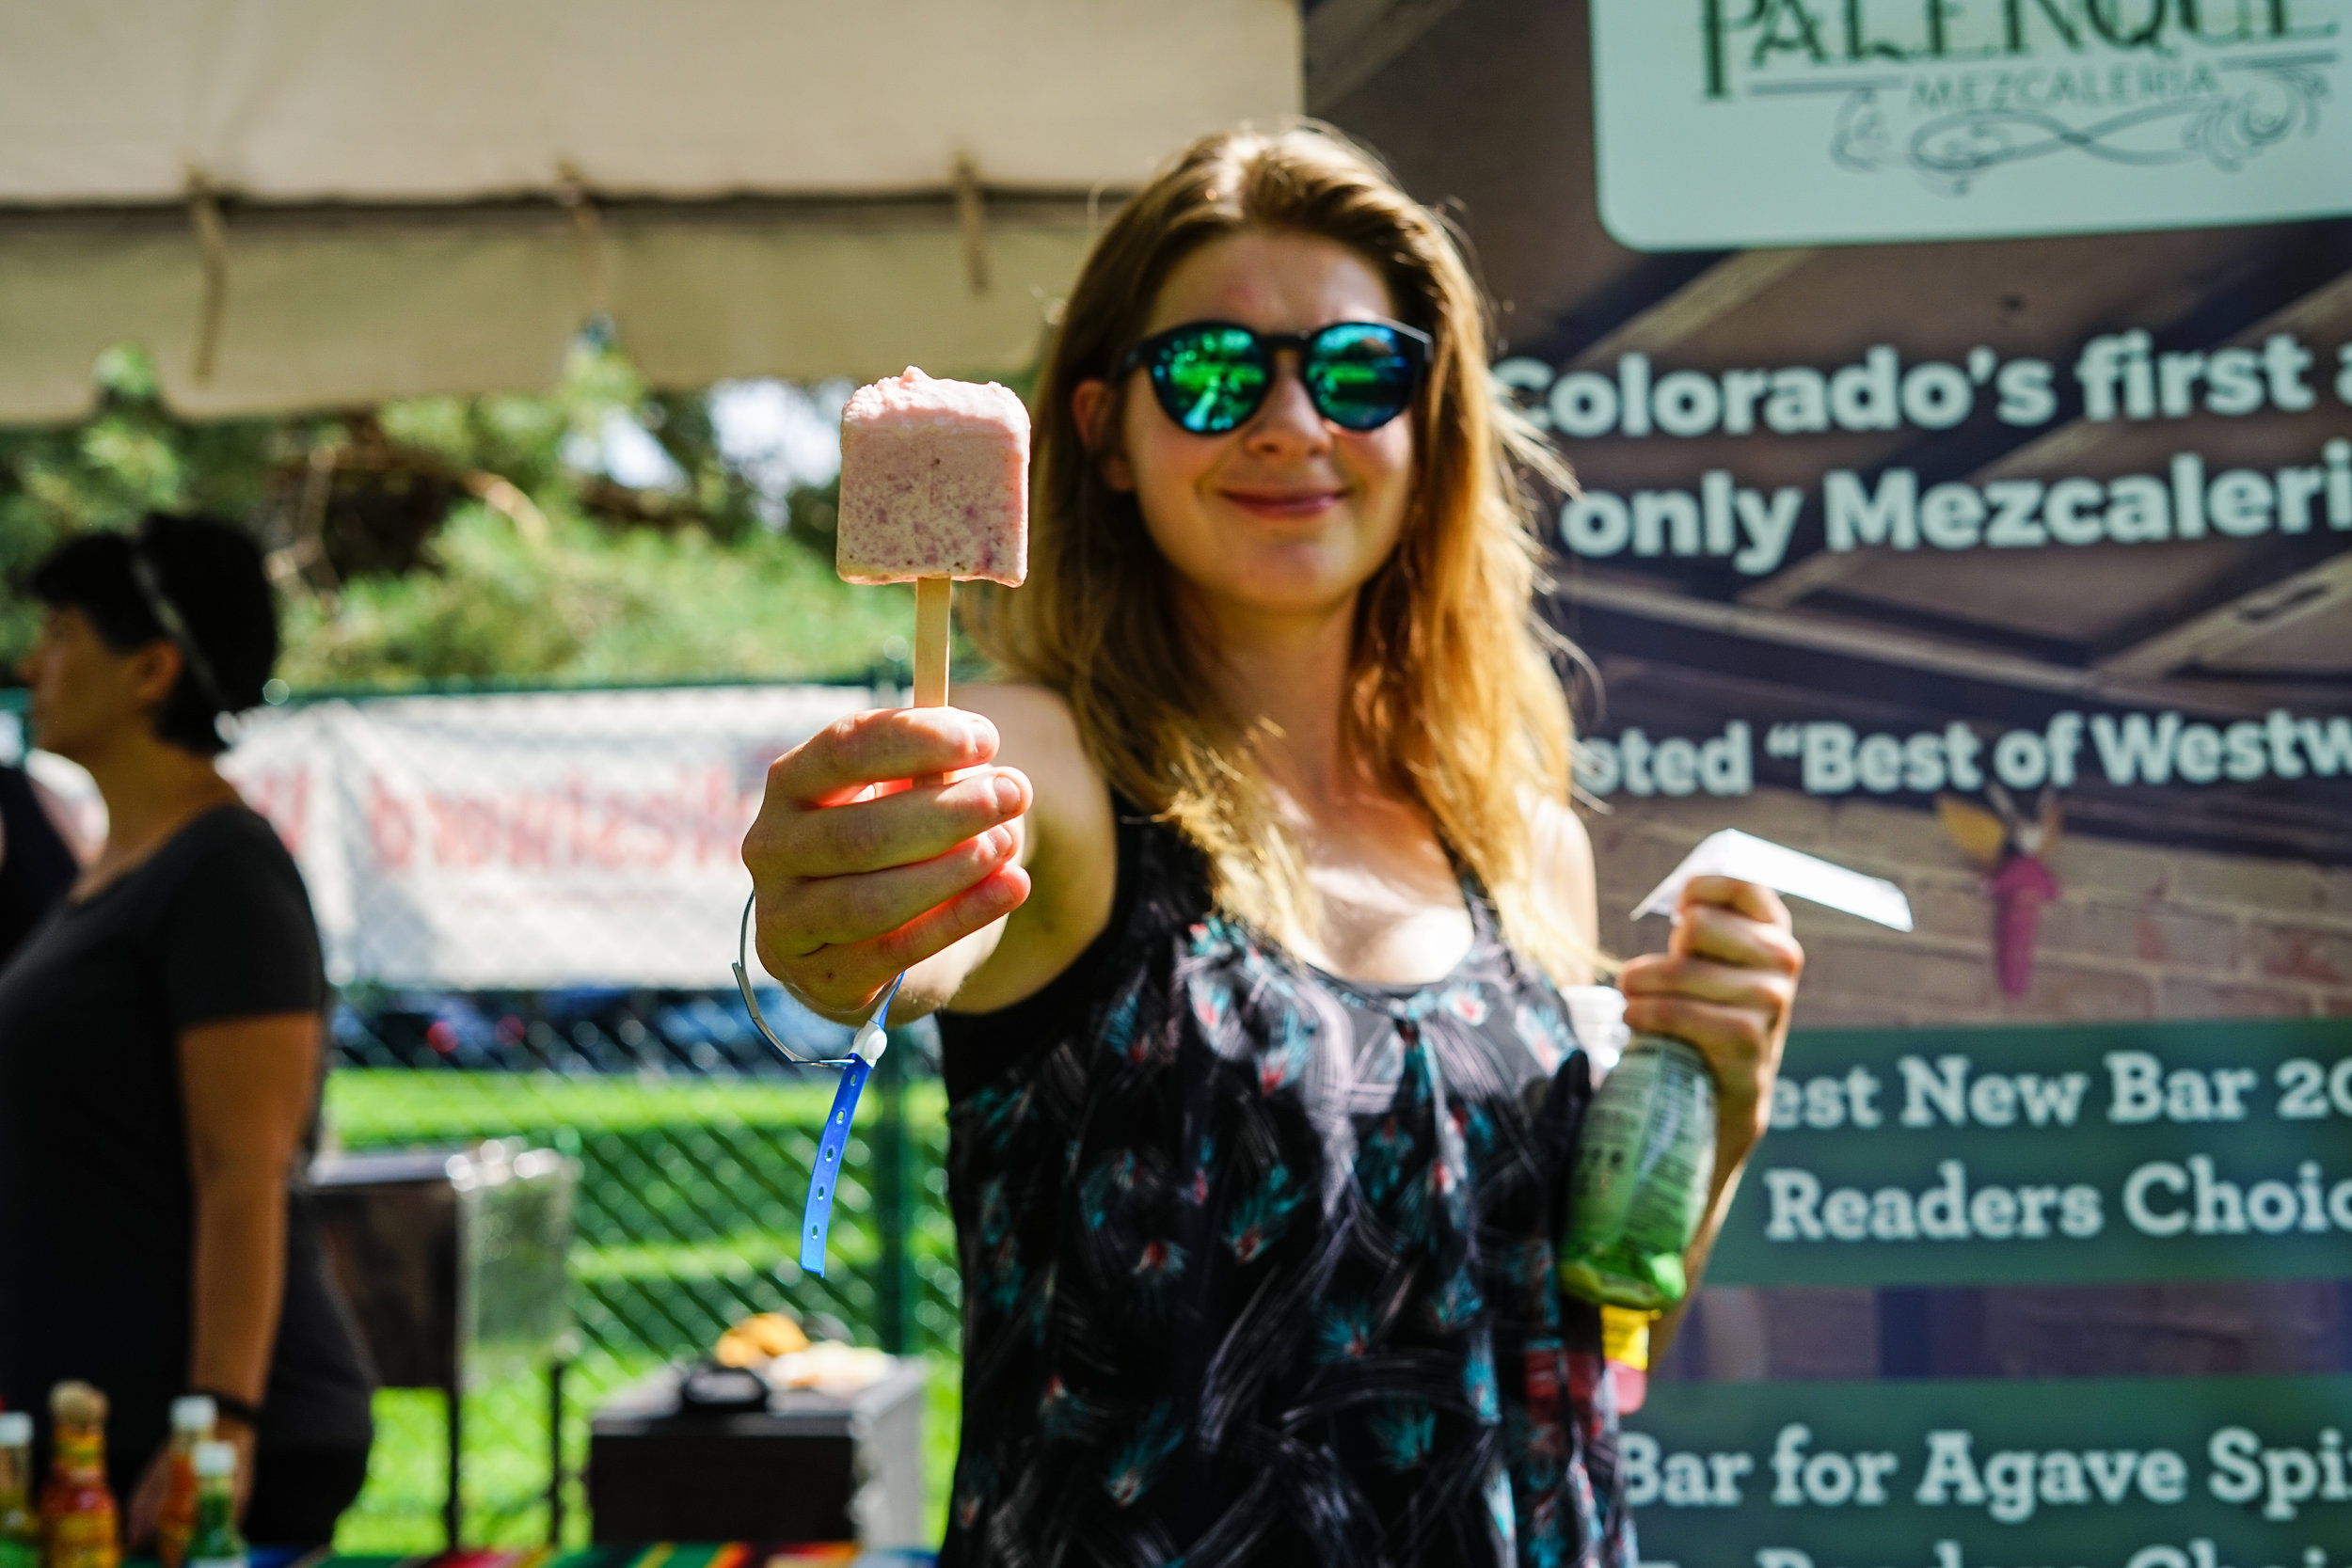 Aside from tacos, there were vendors sampling some tasty treats. (Photo Credit: Robert Castro)